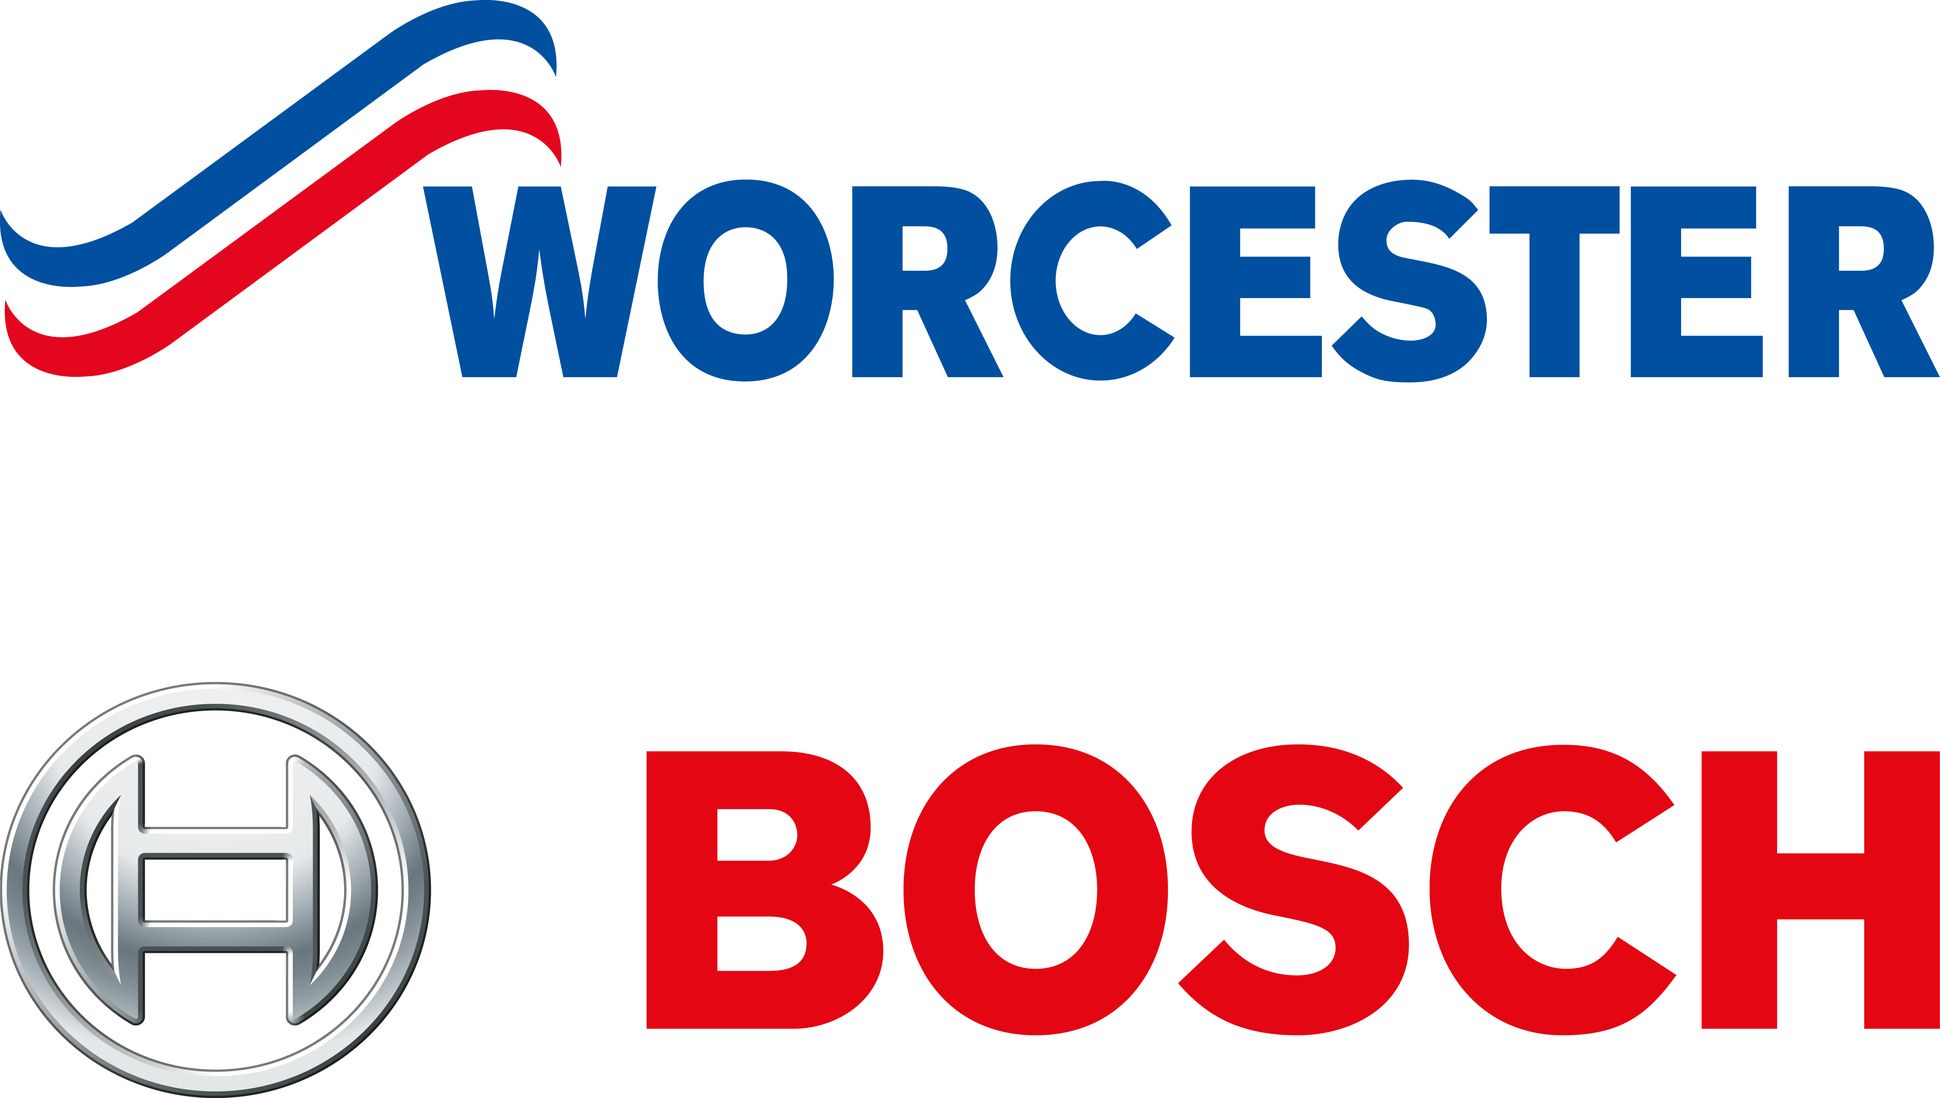 WORCESTER Approved Installer